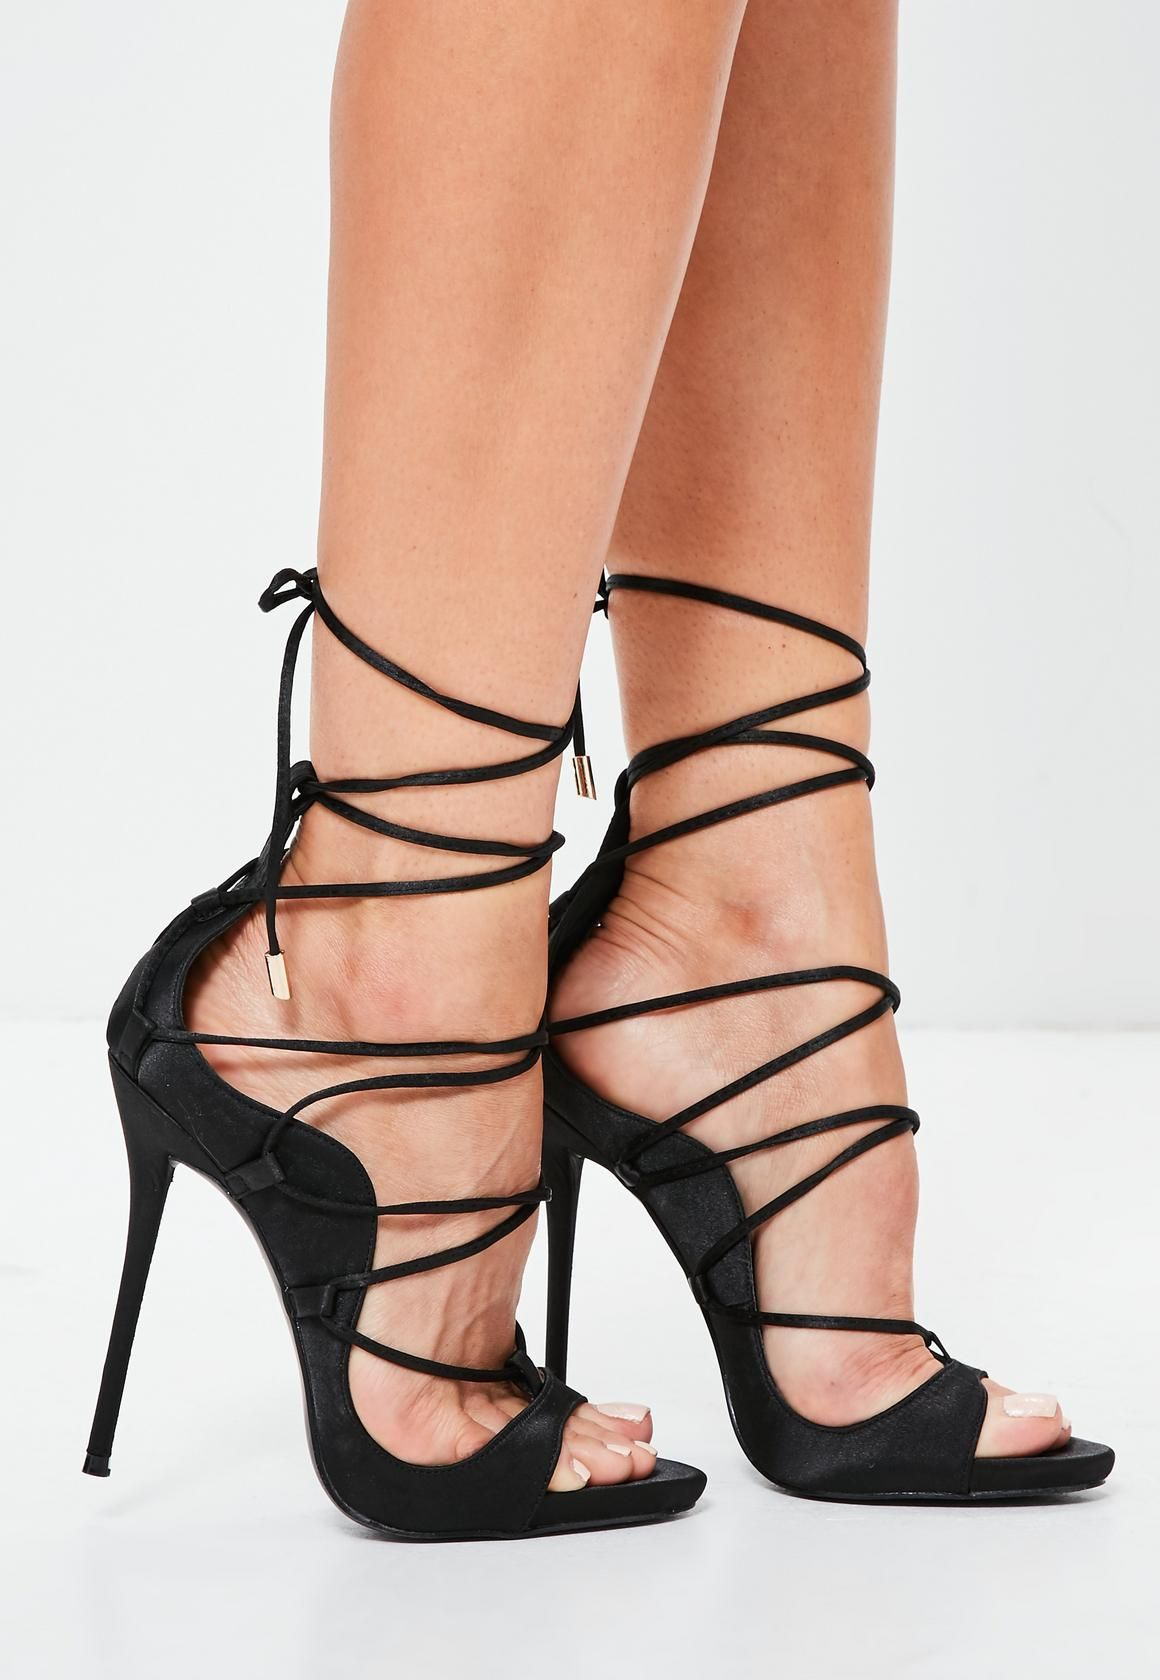 5f7acd891 Missguided - Black Satin Gladiator Sandals